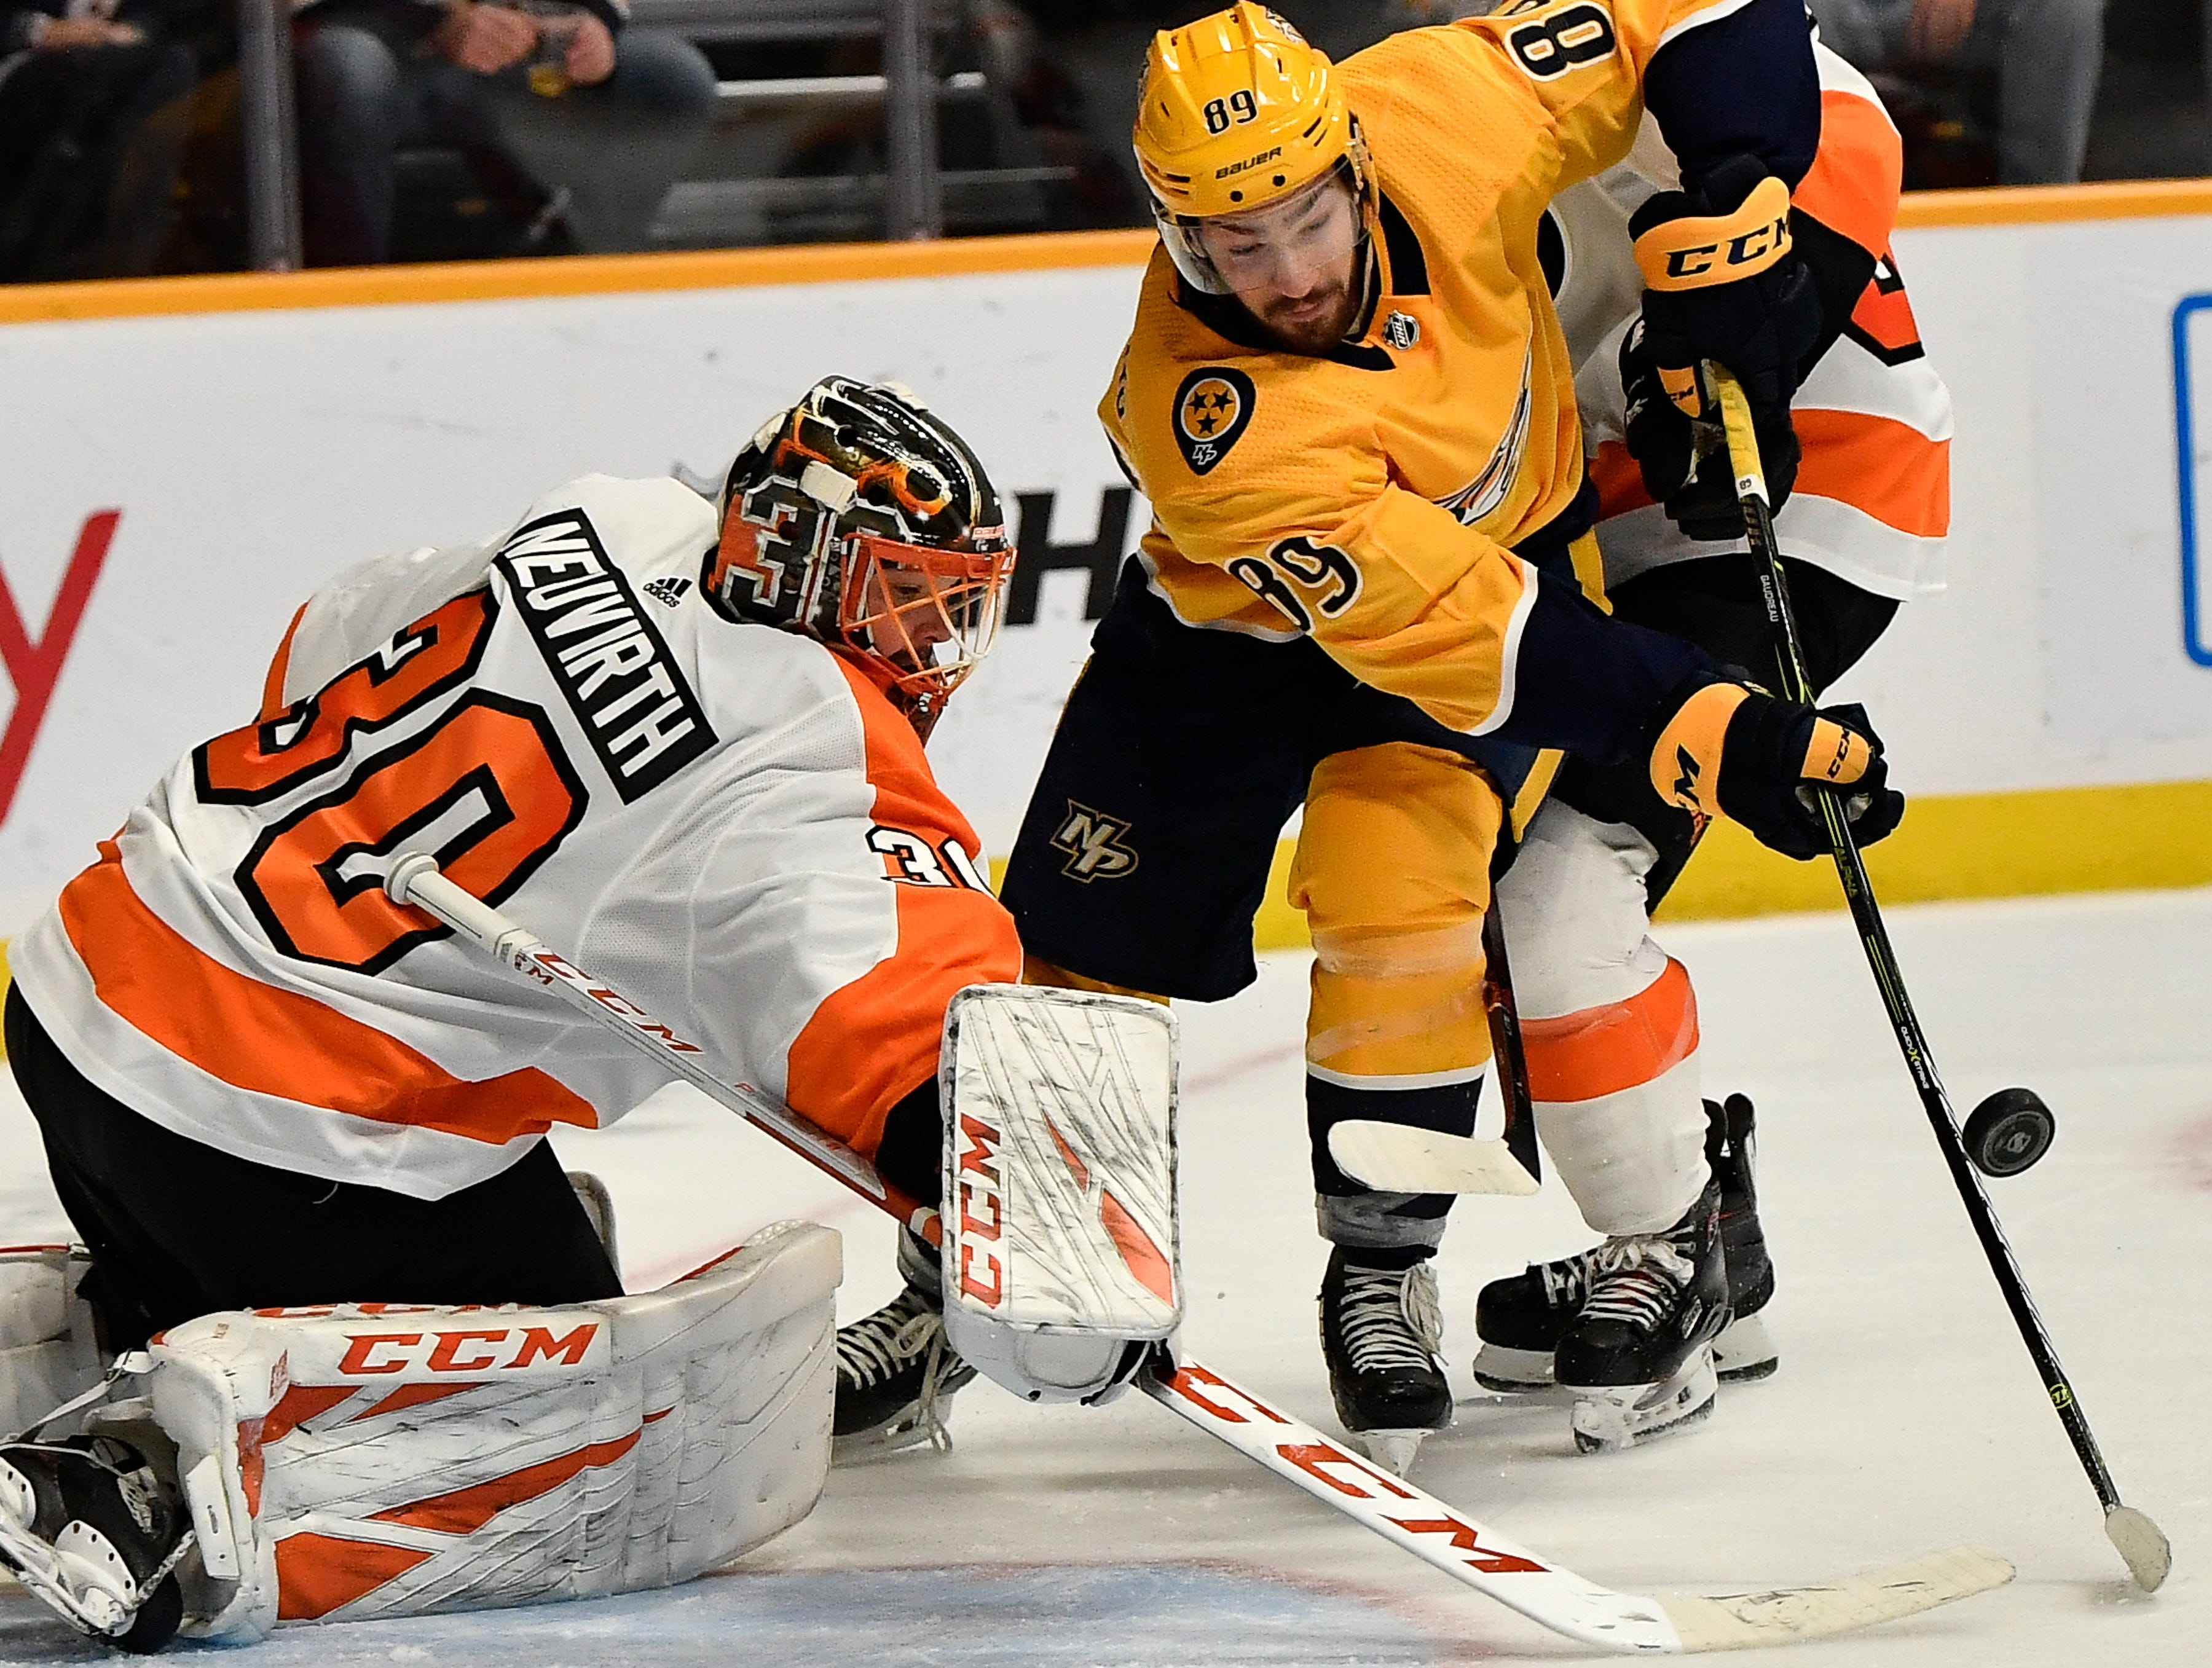 Predators center Frederick Gaudreau (89) tries to get the puck past Flyers goaltender Mich